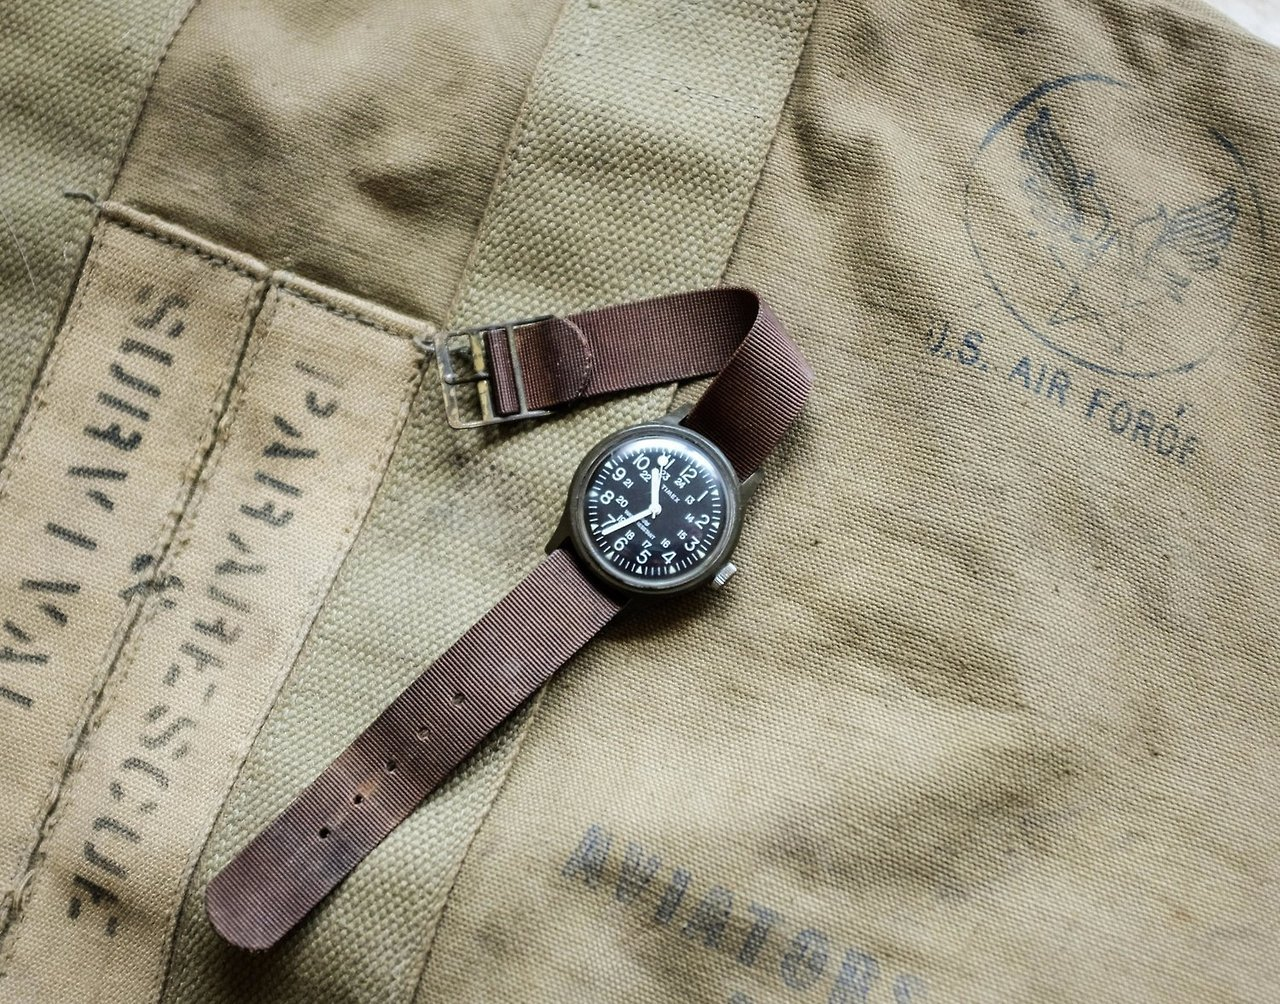 Q+A with Alexander Saunders of Saunders Militaria – Put This On